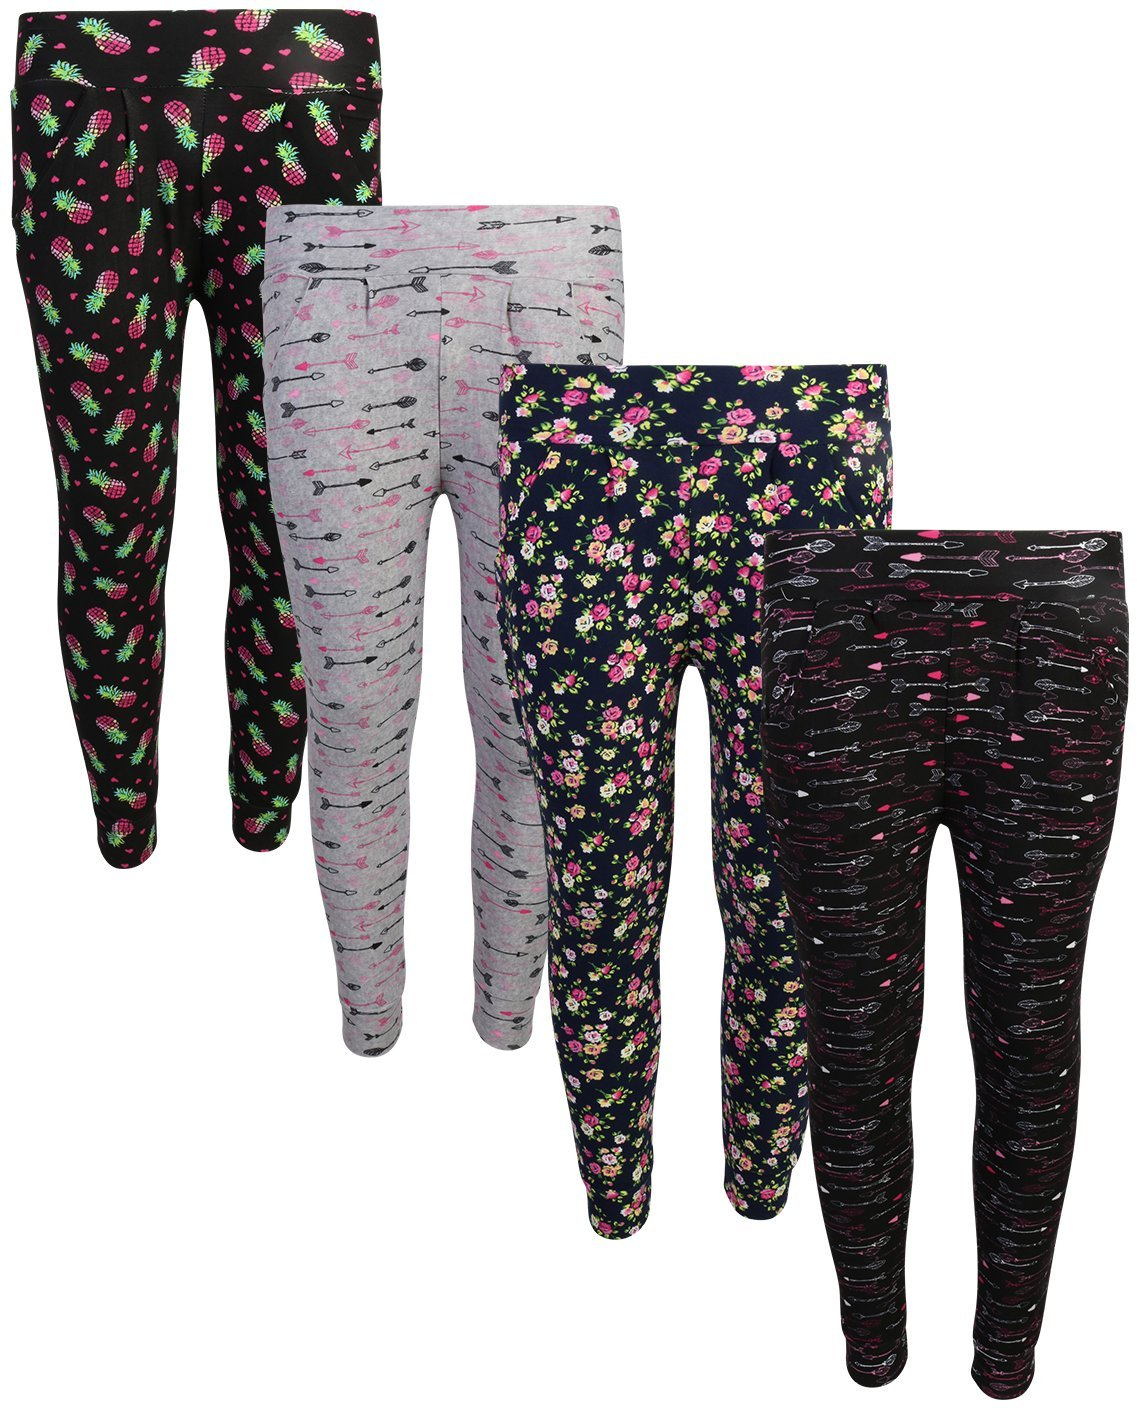 Real Love Girls Yummy Jogger Pants (4 Pack) Flower/Arrow/Pineapple, Size 4'